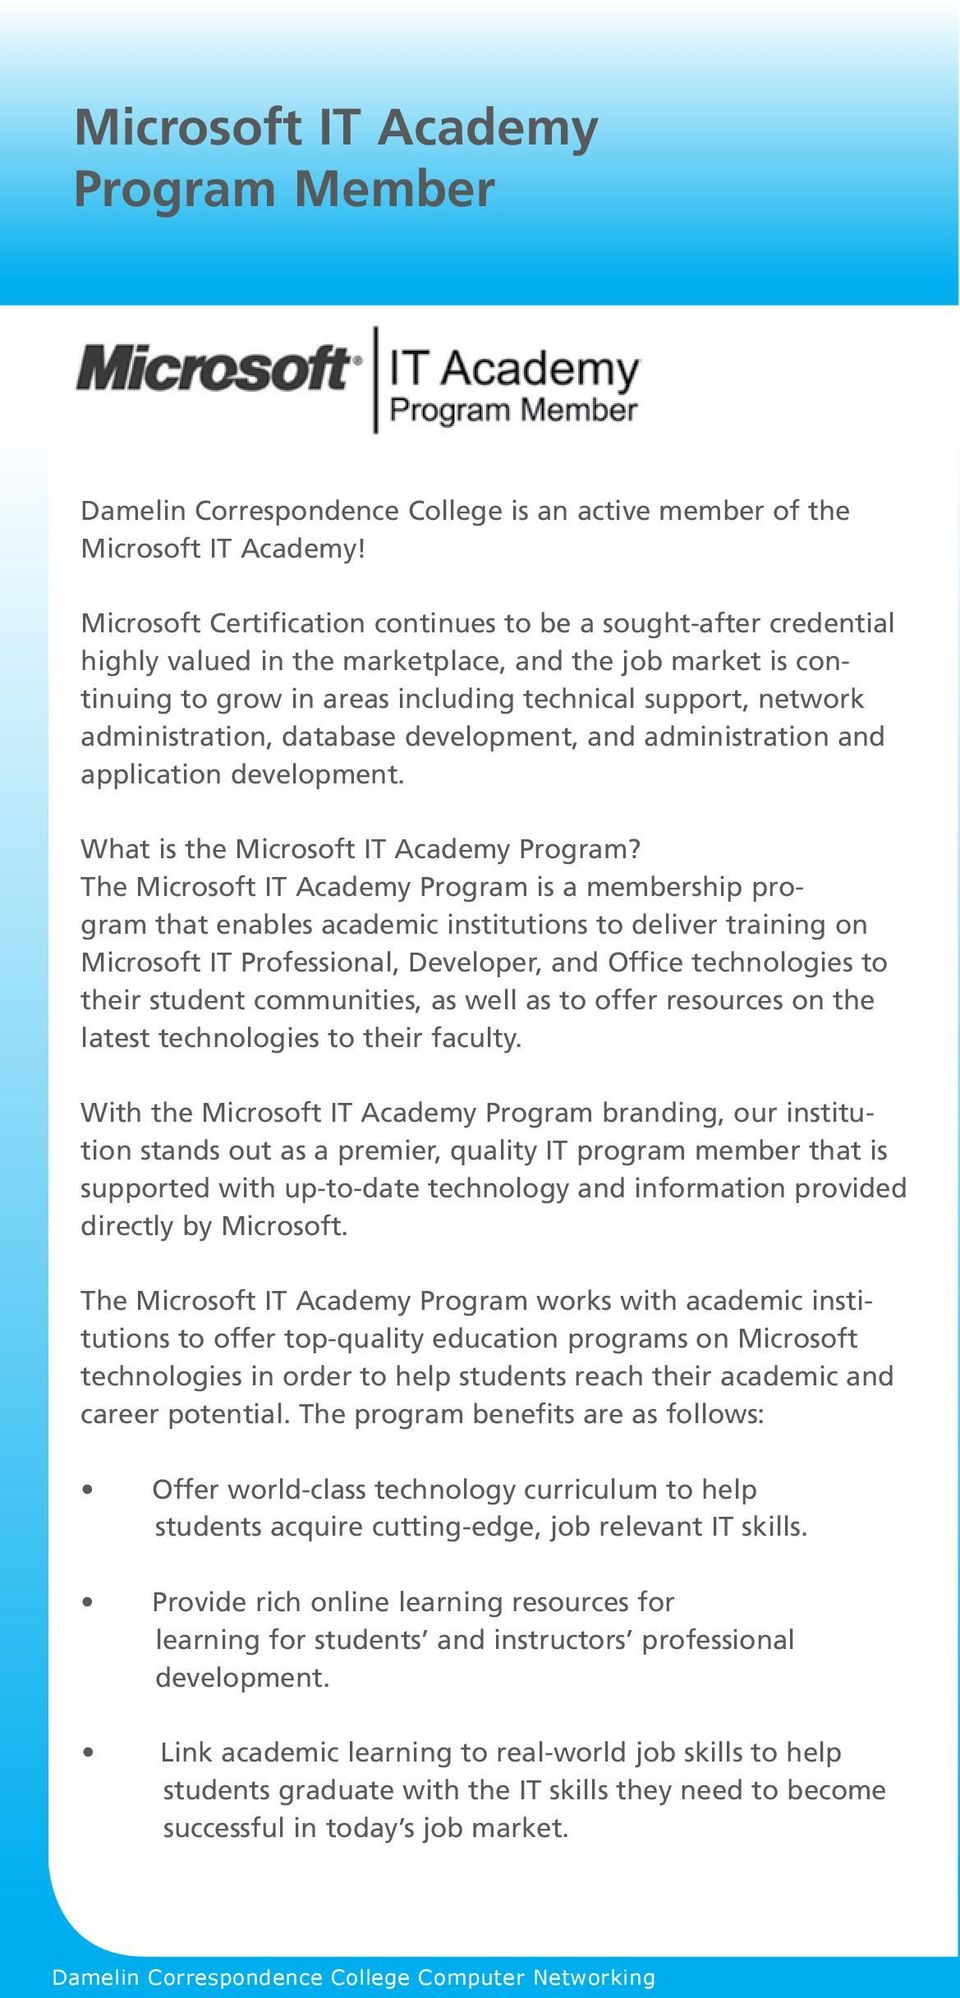 administration, database development, and administration and application development. What is the Microsoft IT Academy Program?